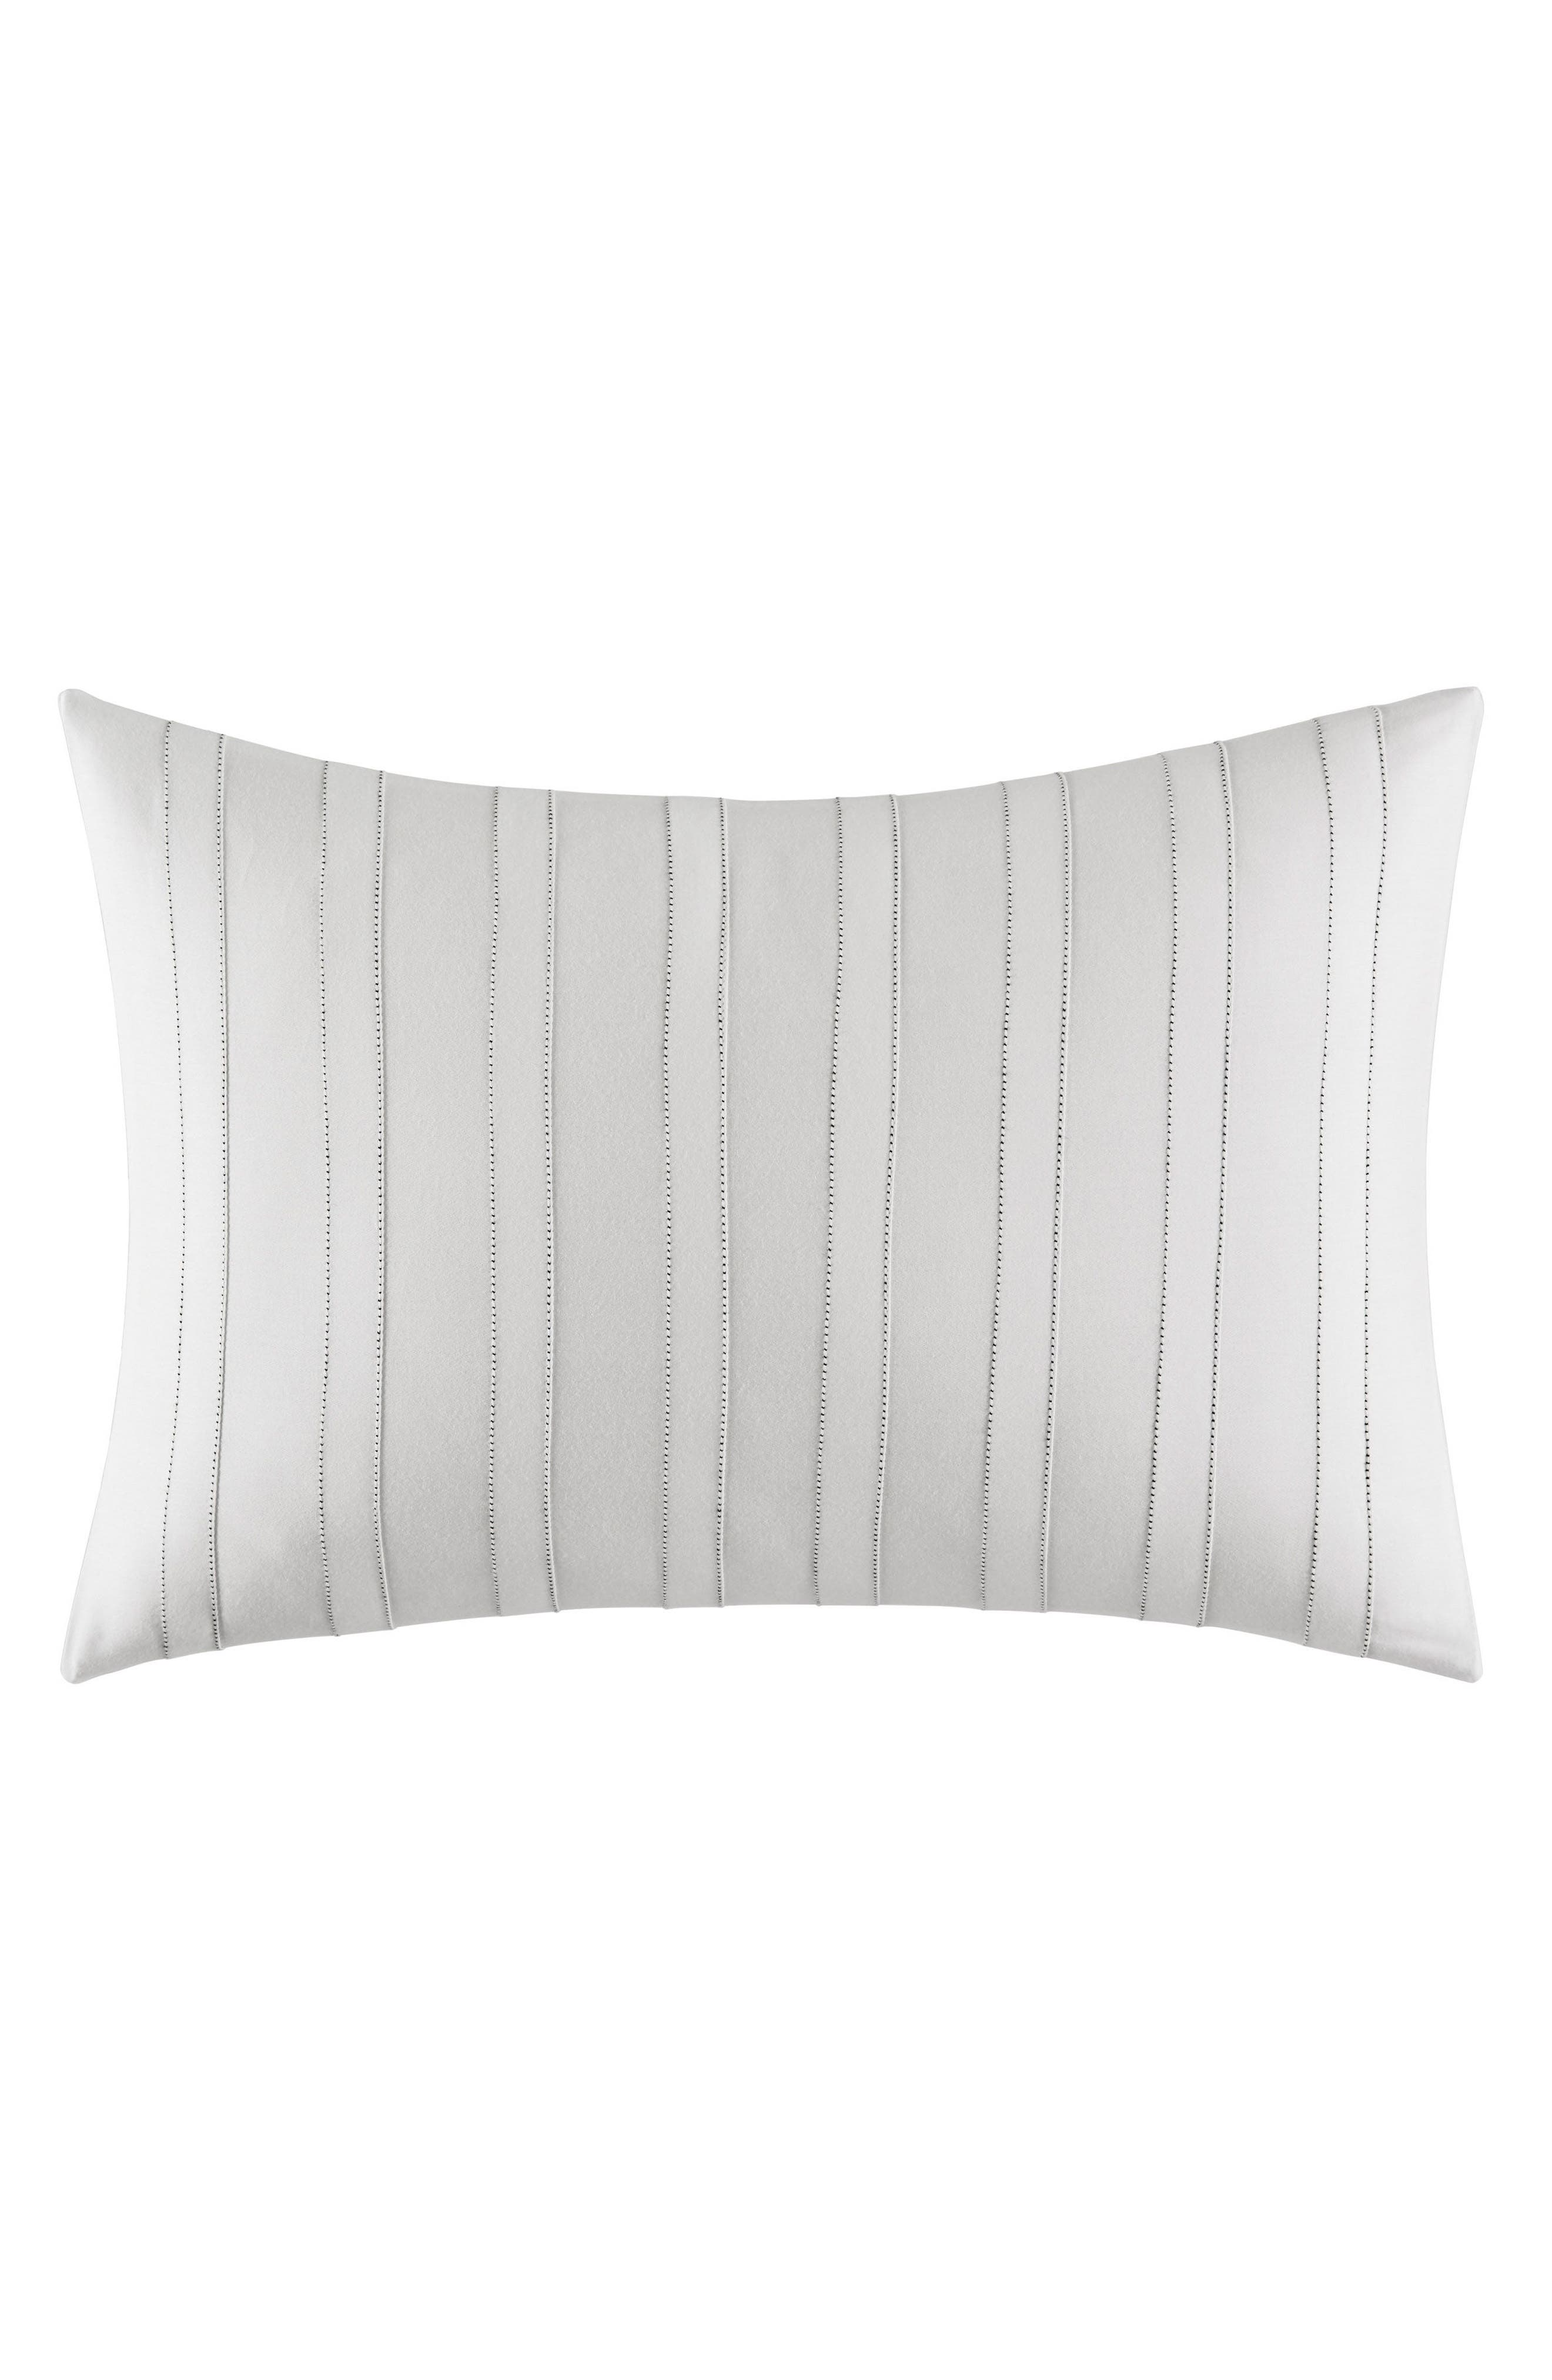 Mirrored Square Breakfast Accent Pillow,                         Main,                         color, White